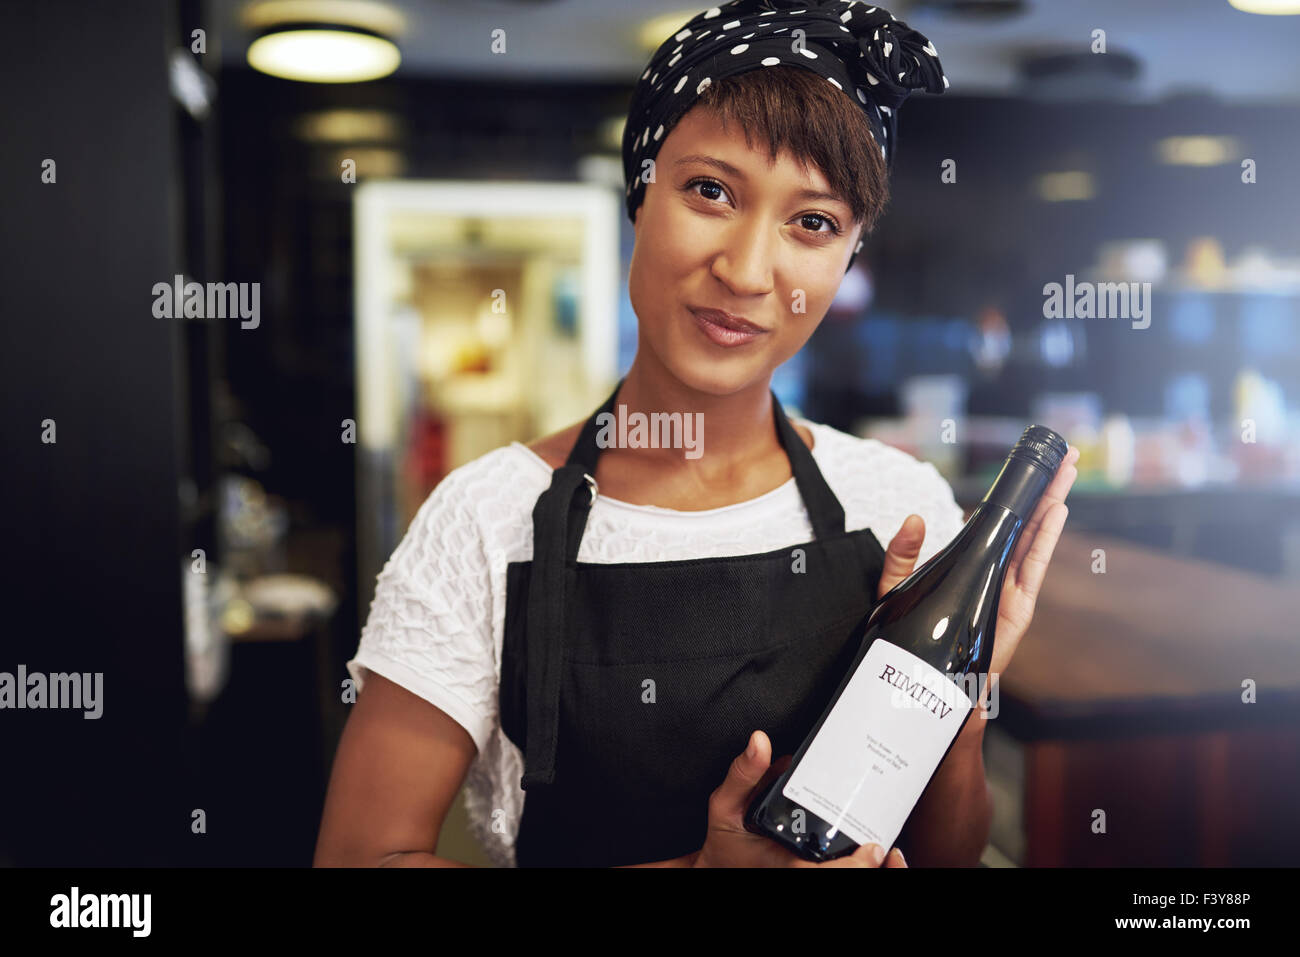 Attractive young African American lady in an apron presenting a bottle of red wine to a customer in a restaurant - Stock Image